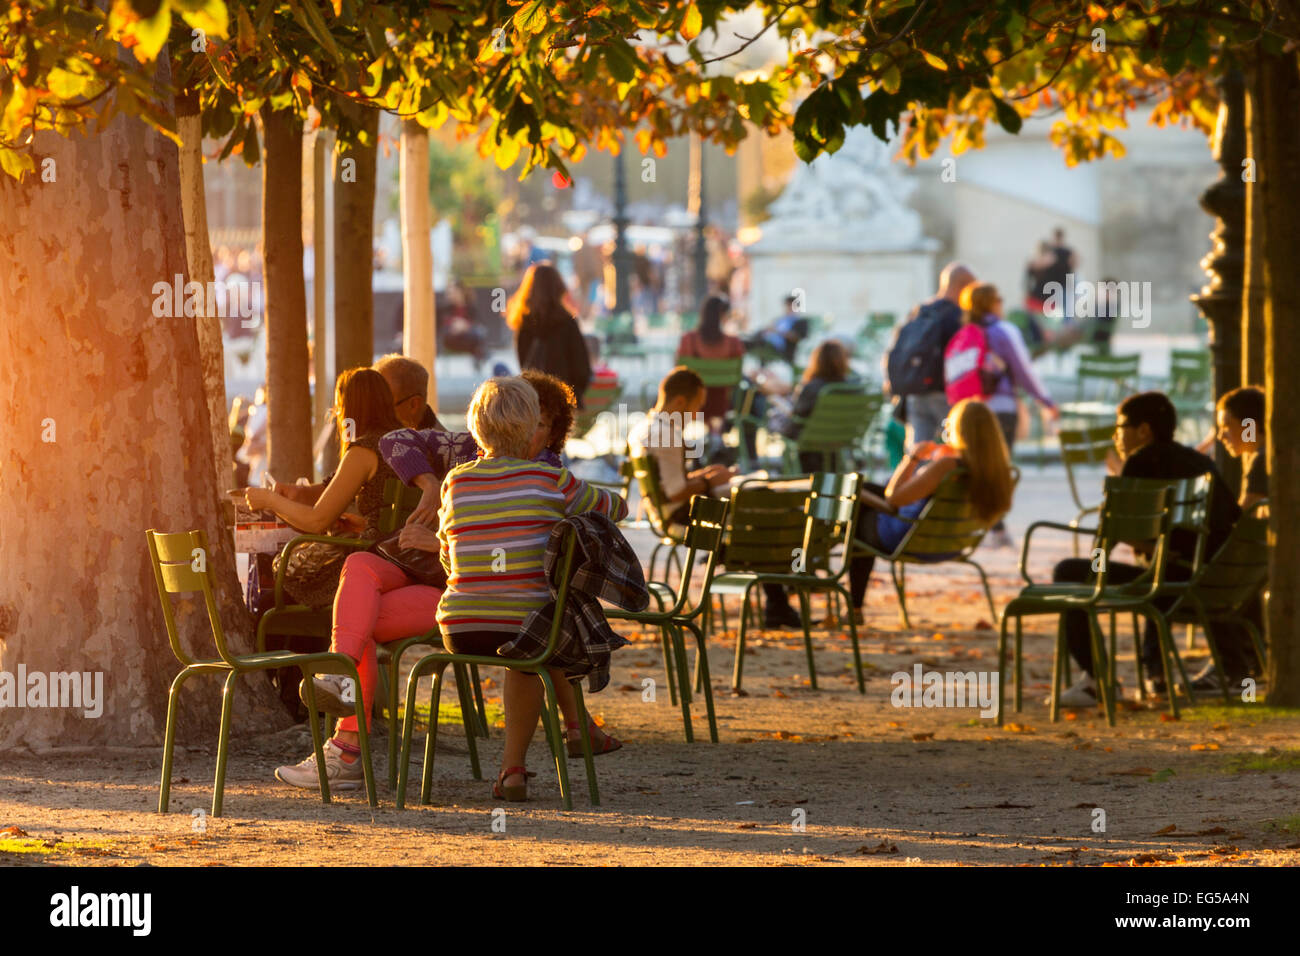 Paris, people relaxing in jardin des tulieries - Stock Image